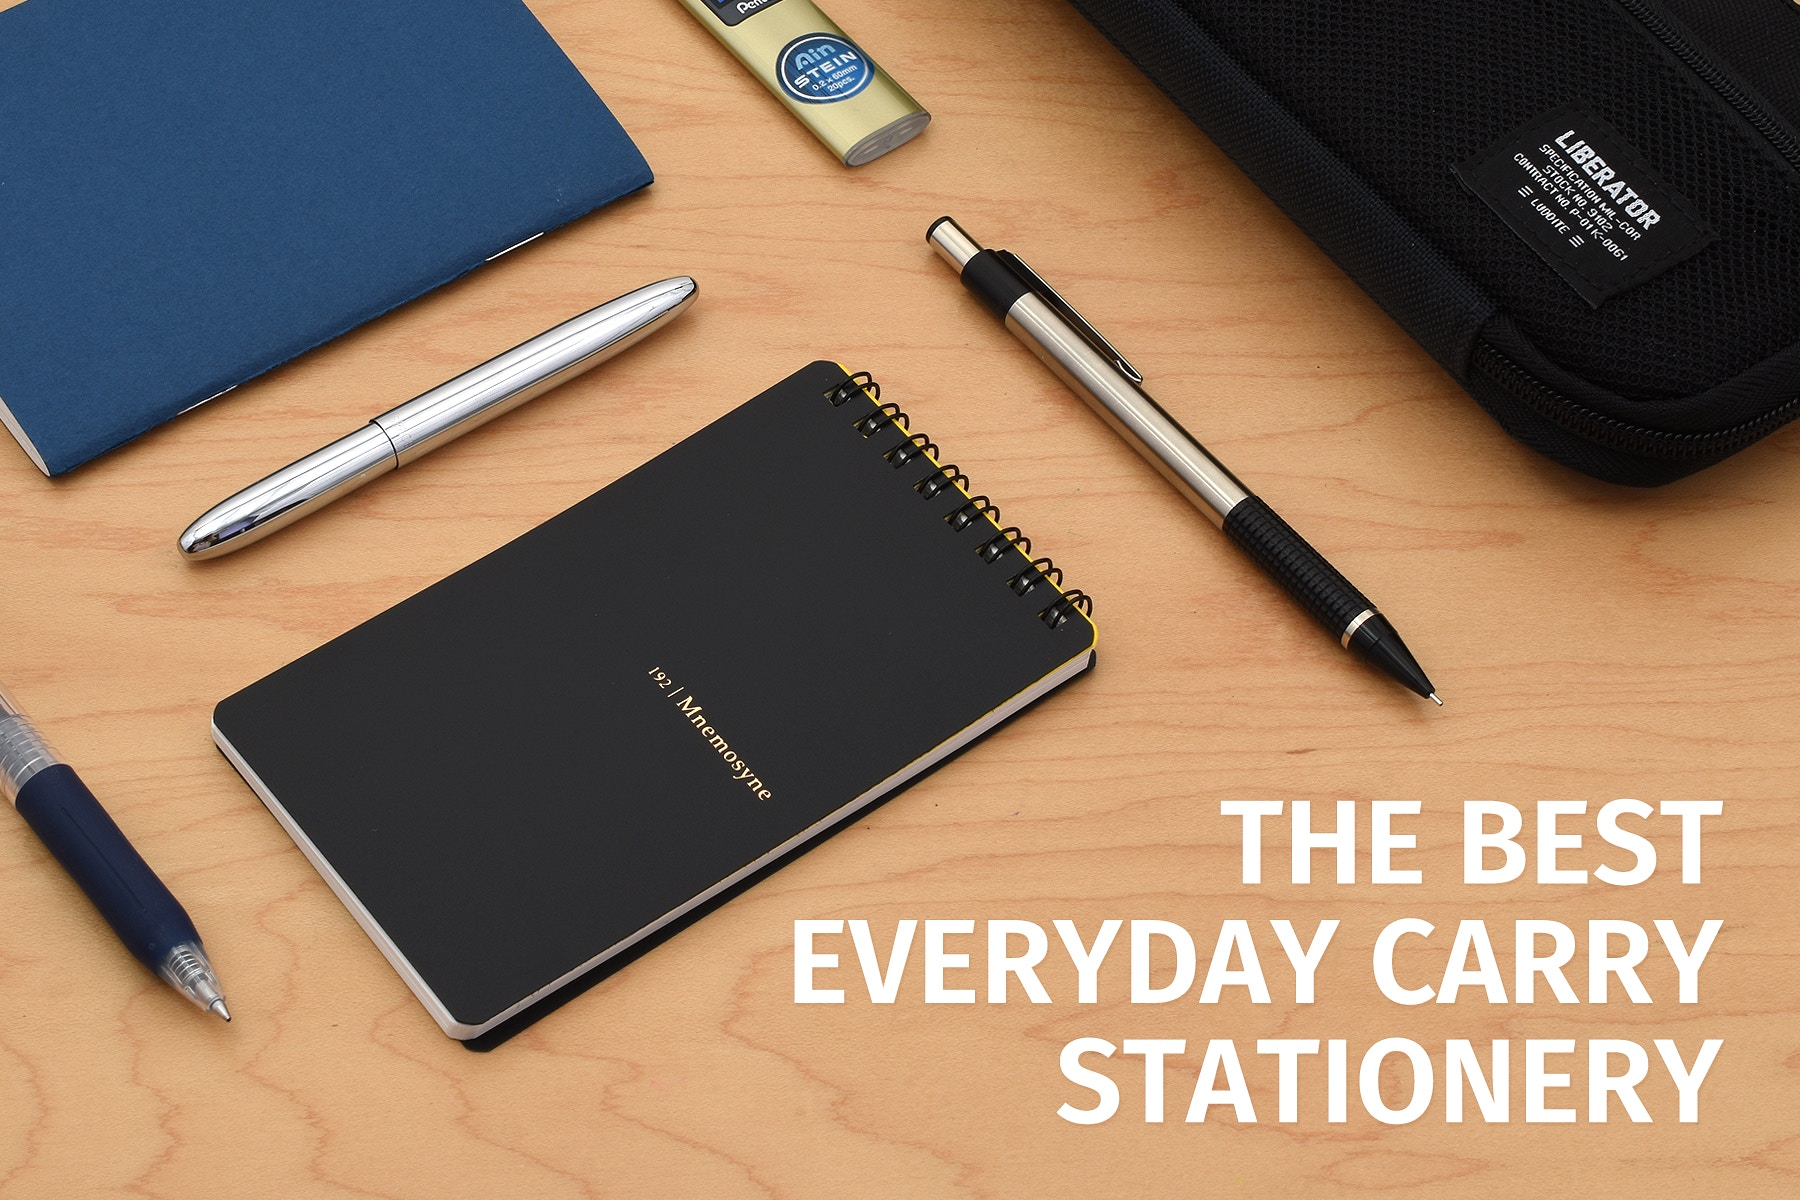 898cbb5e62 The Best Everyday Carry Stationery Supplies for 2019